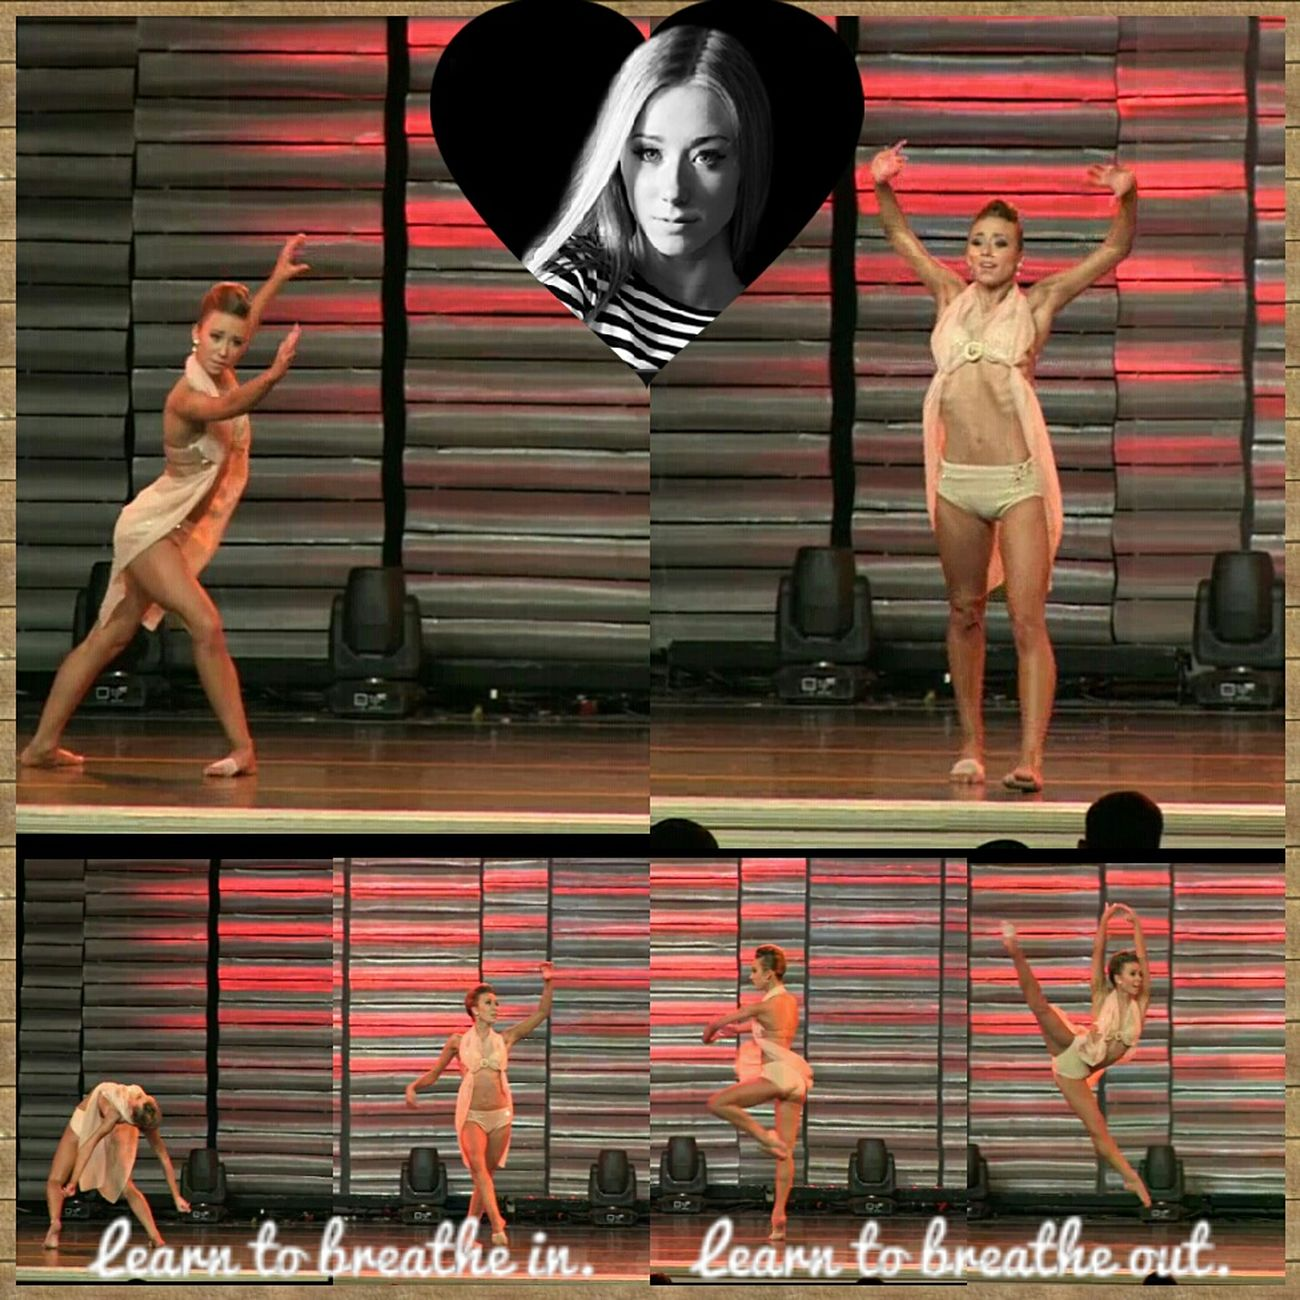 16 year old Hayden Hopkins performing breathe in, breathe out, she is now 17 however. This solo is chorographed by her and she won the senoir best dancer award with it at las vegas. I made hers a collage because not only is she one of my favorite dancers and favorite teen dancer but also one of my favorite choreographers too. So glad that she wants to be a choreographer (even though she is one of the best dancers in the nation) and is already doing it for others, though not profesionaly yet. Hayden Hopkins has toured Australia over 7 times!! Choreographer  Art Dancer Dance Life DANCE ♥ Hayden  Flexibility 17 Double Trouble Dance Dancers